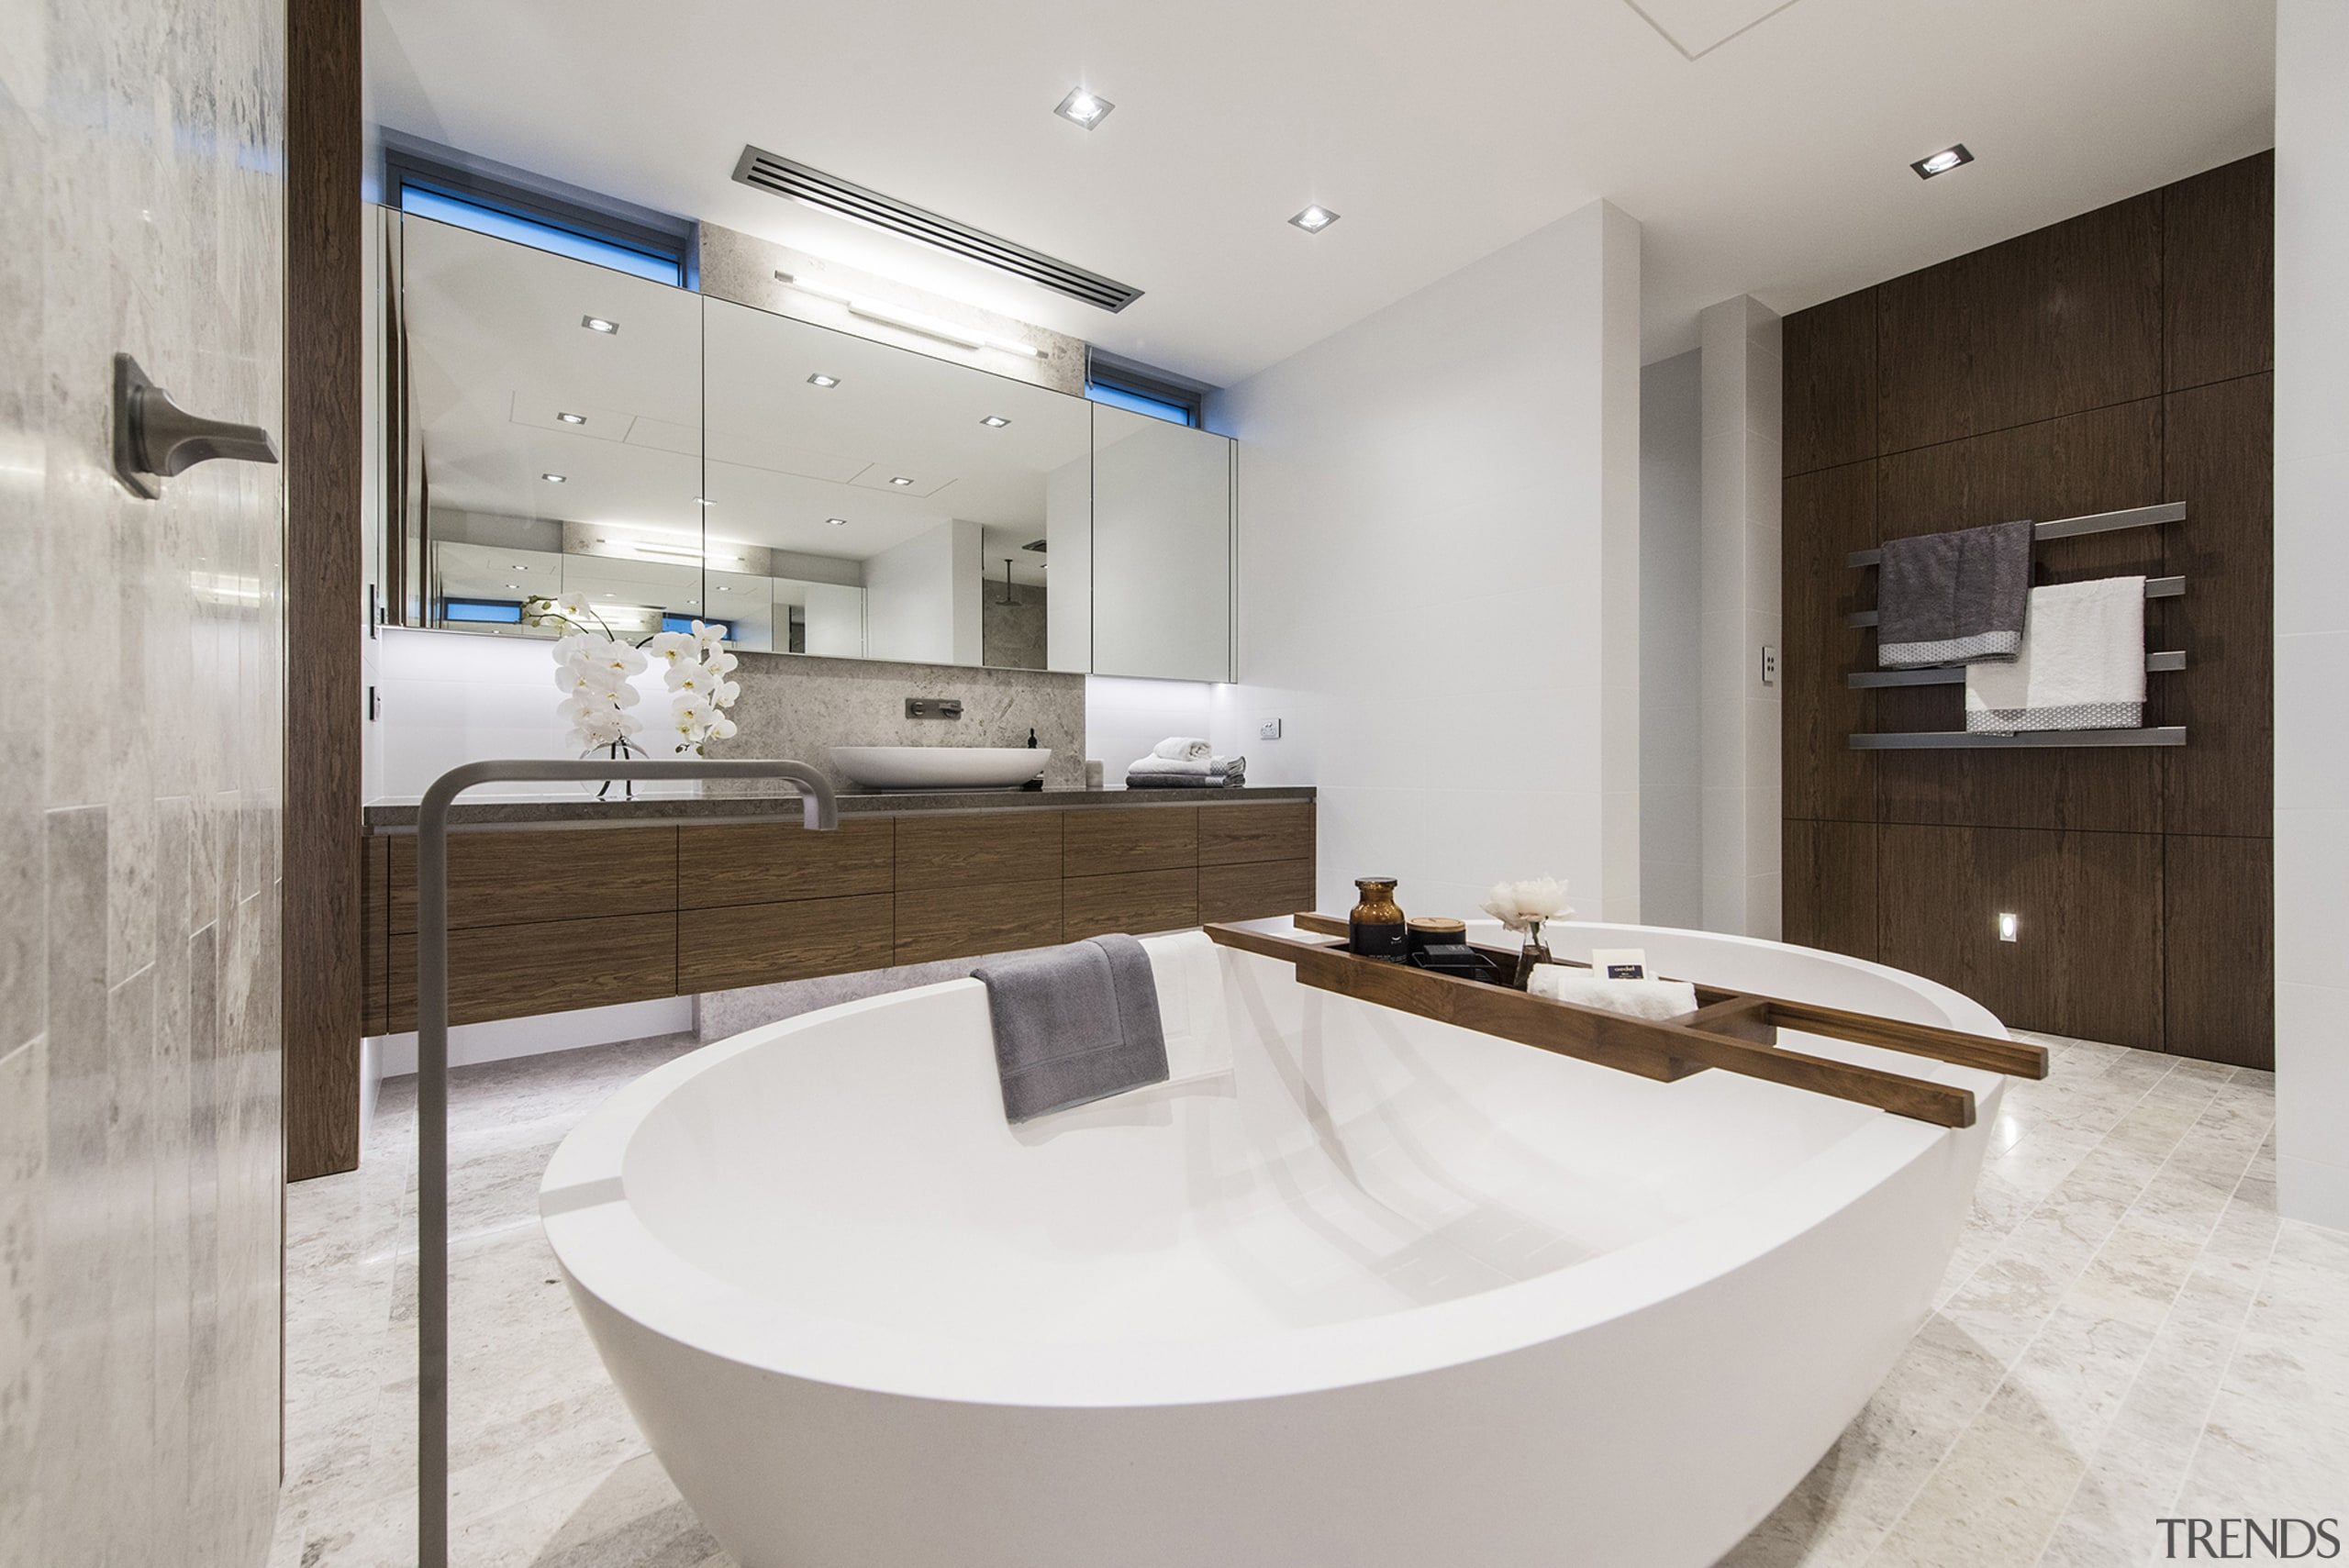 The toilet cubicle is tucked away to the architecture, bathroom, interior design, kitchen, real estate, sink, gray